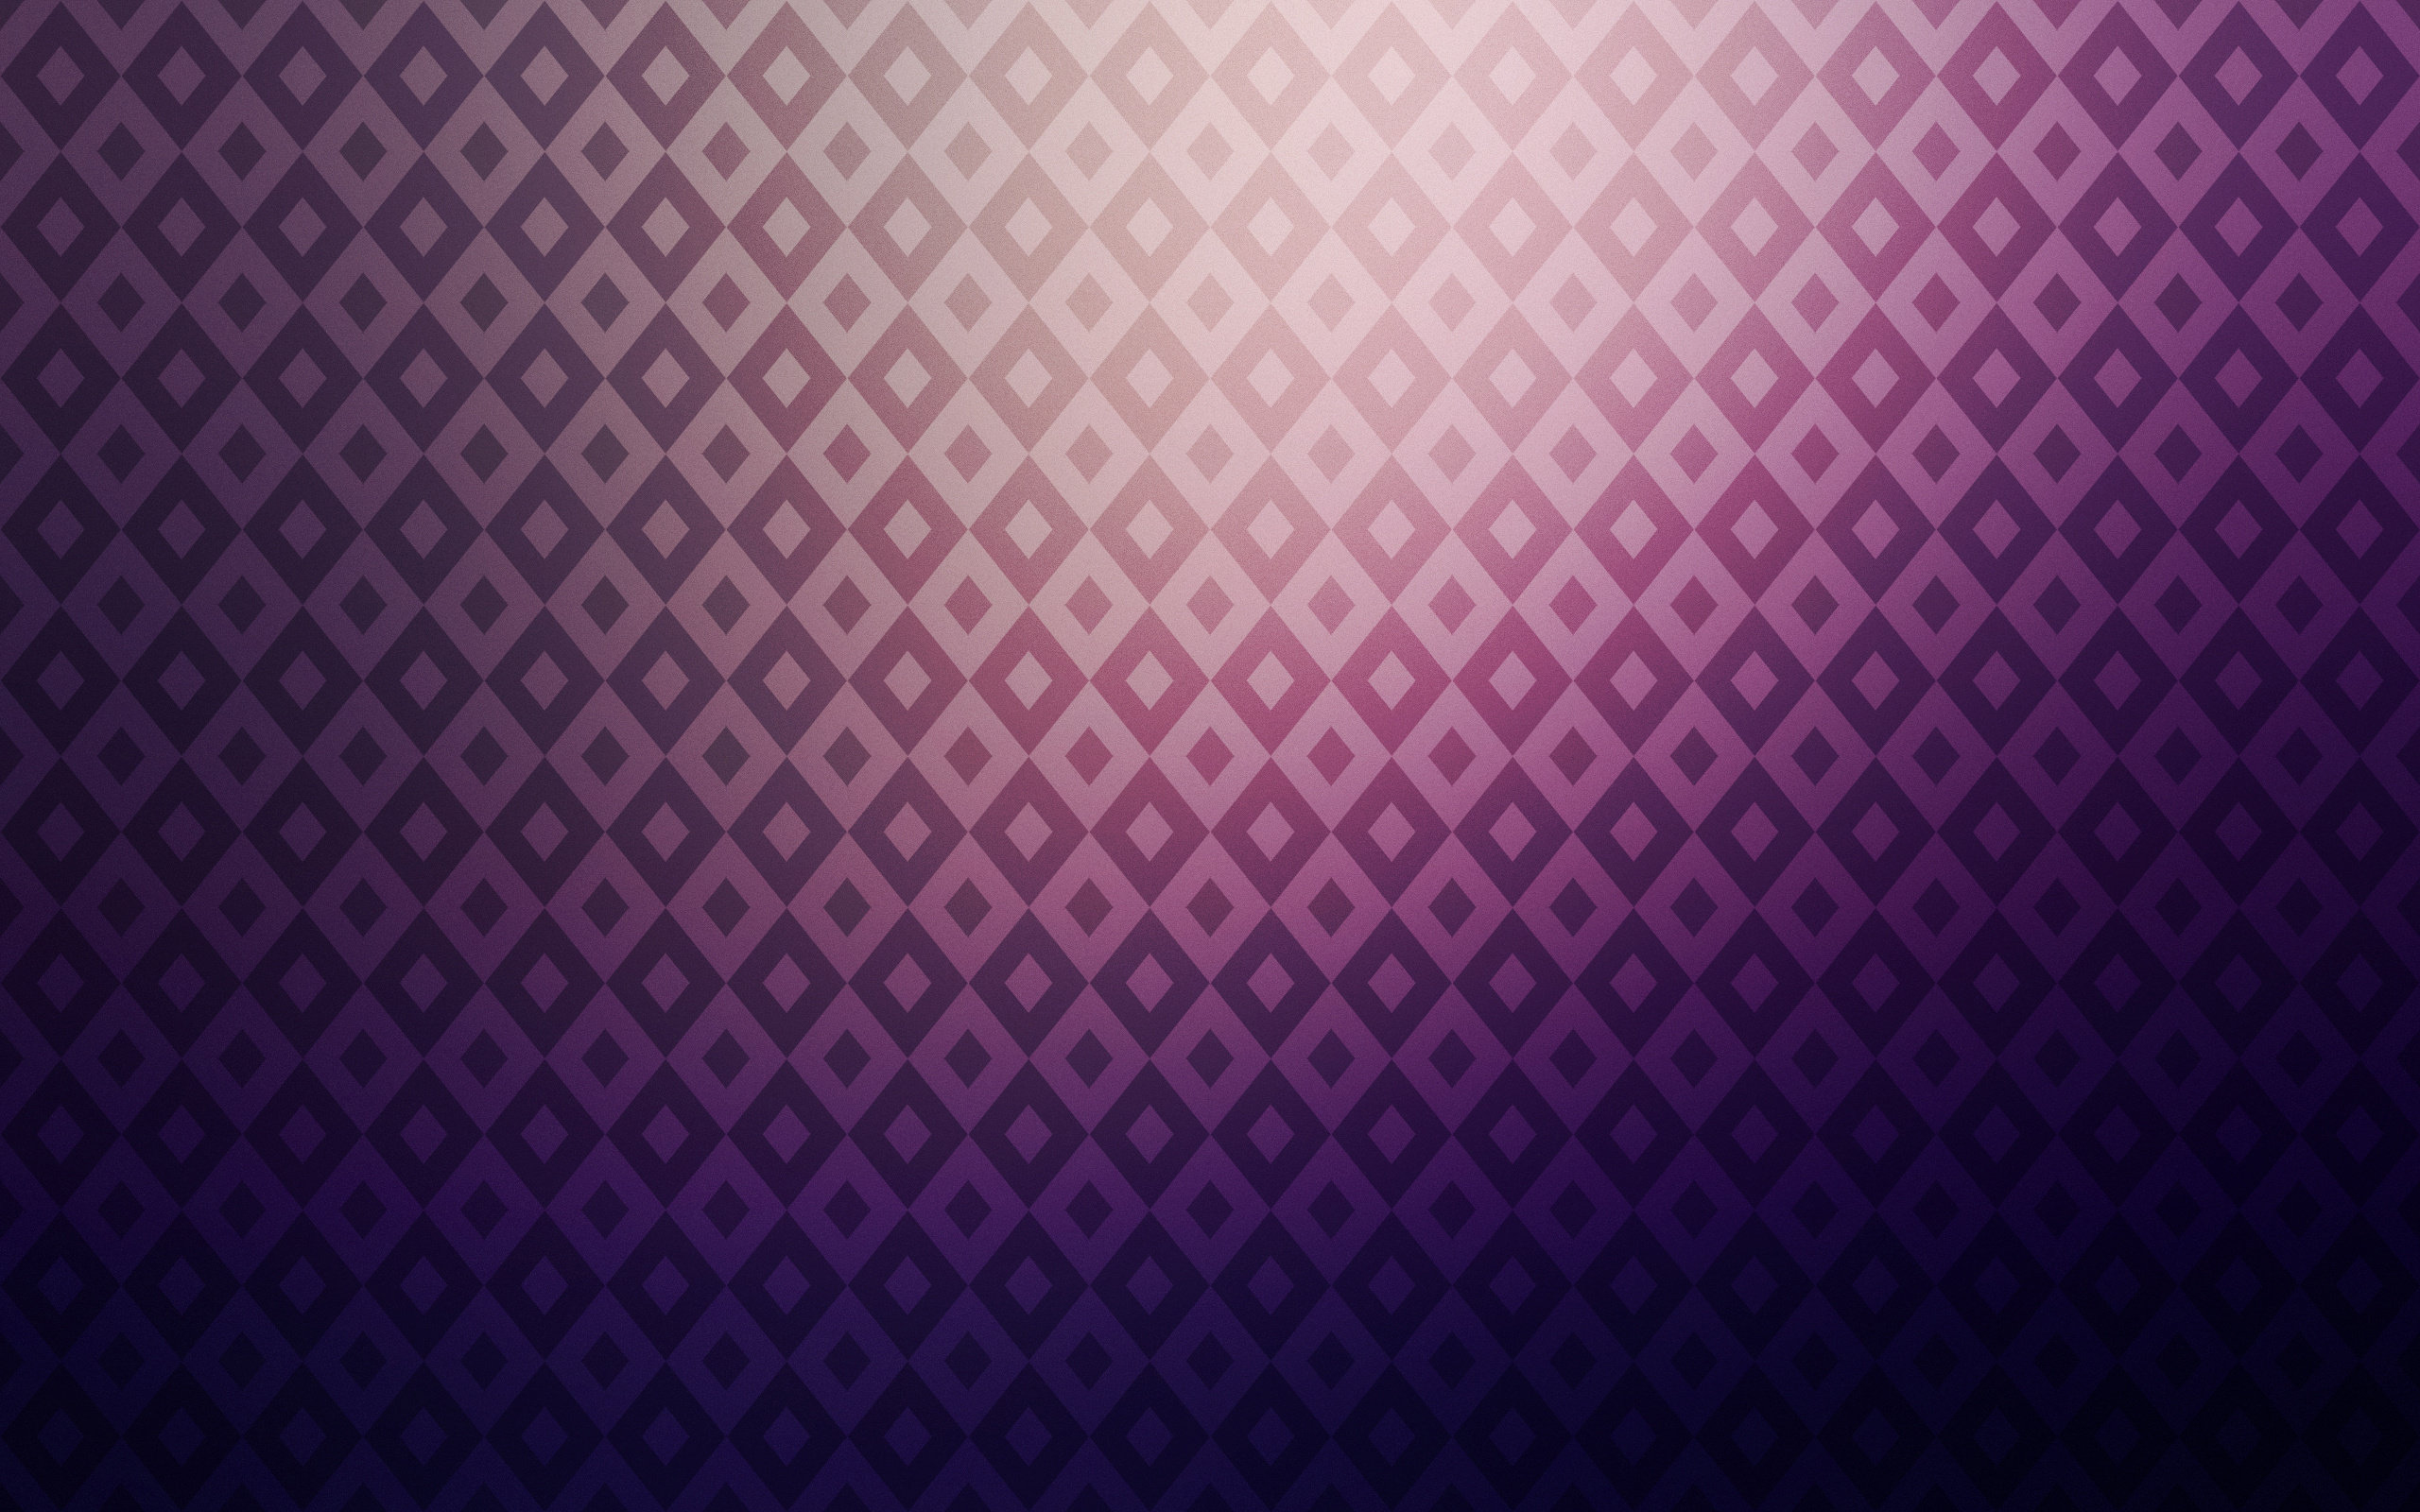 textures patterns, templates, download photo, pattern background textures